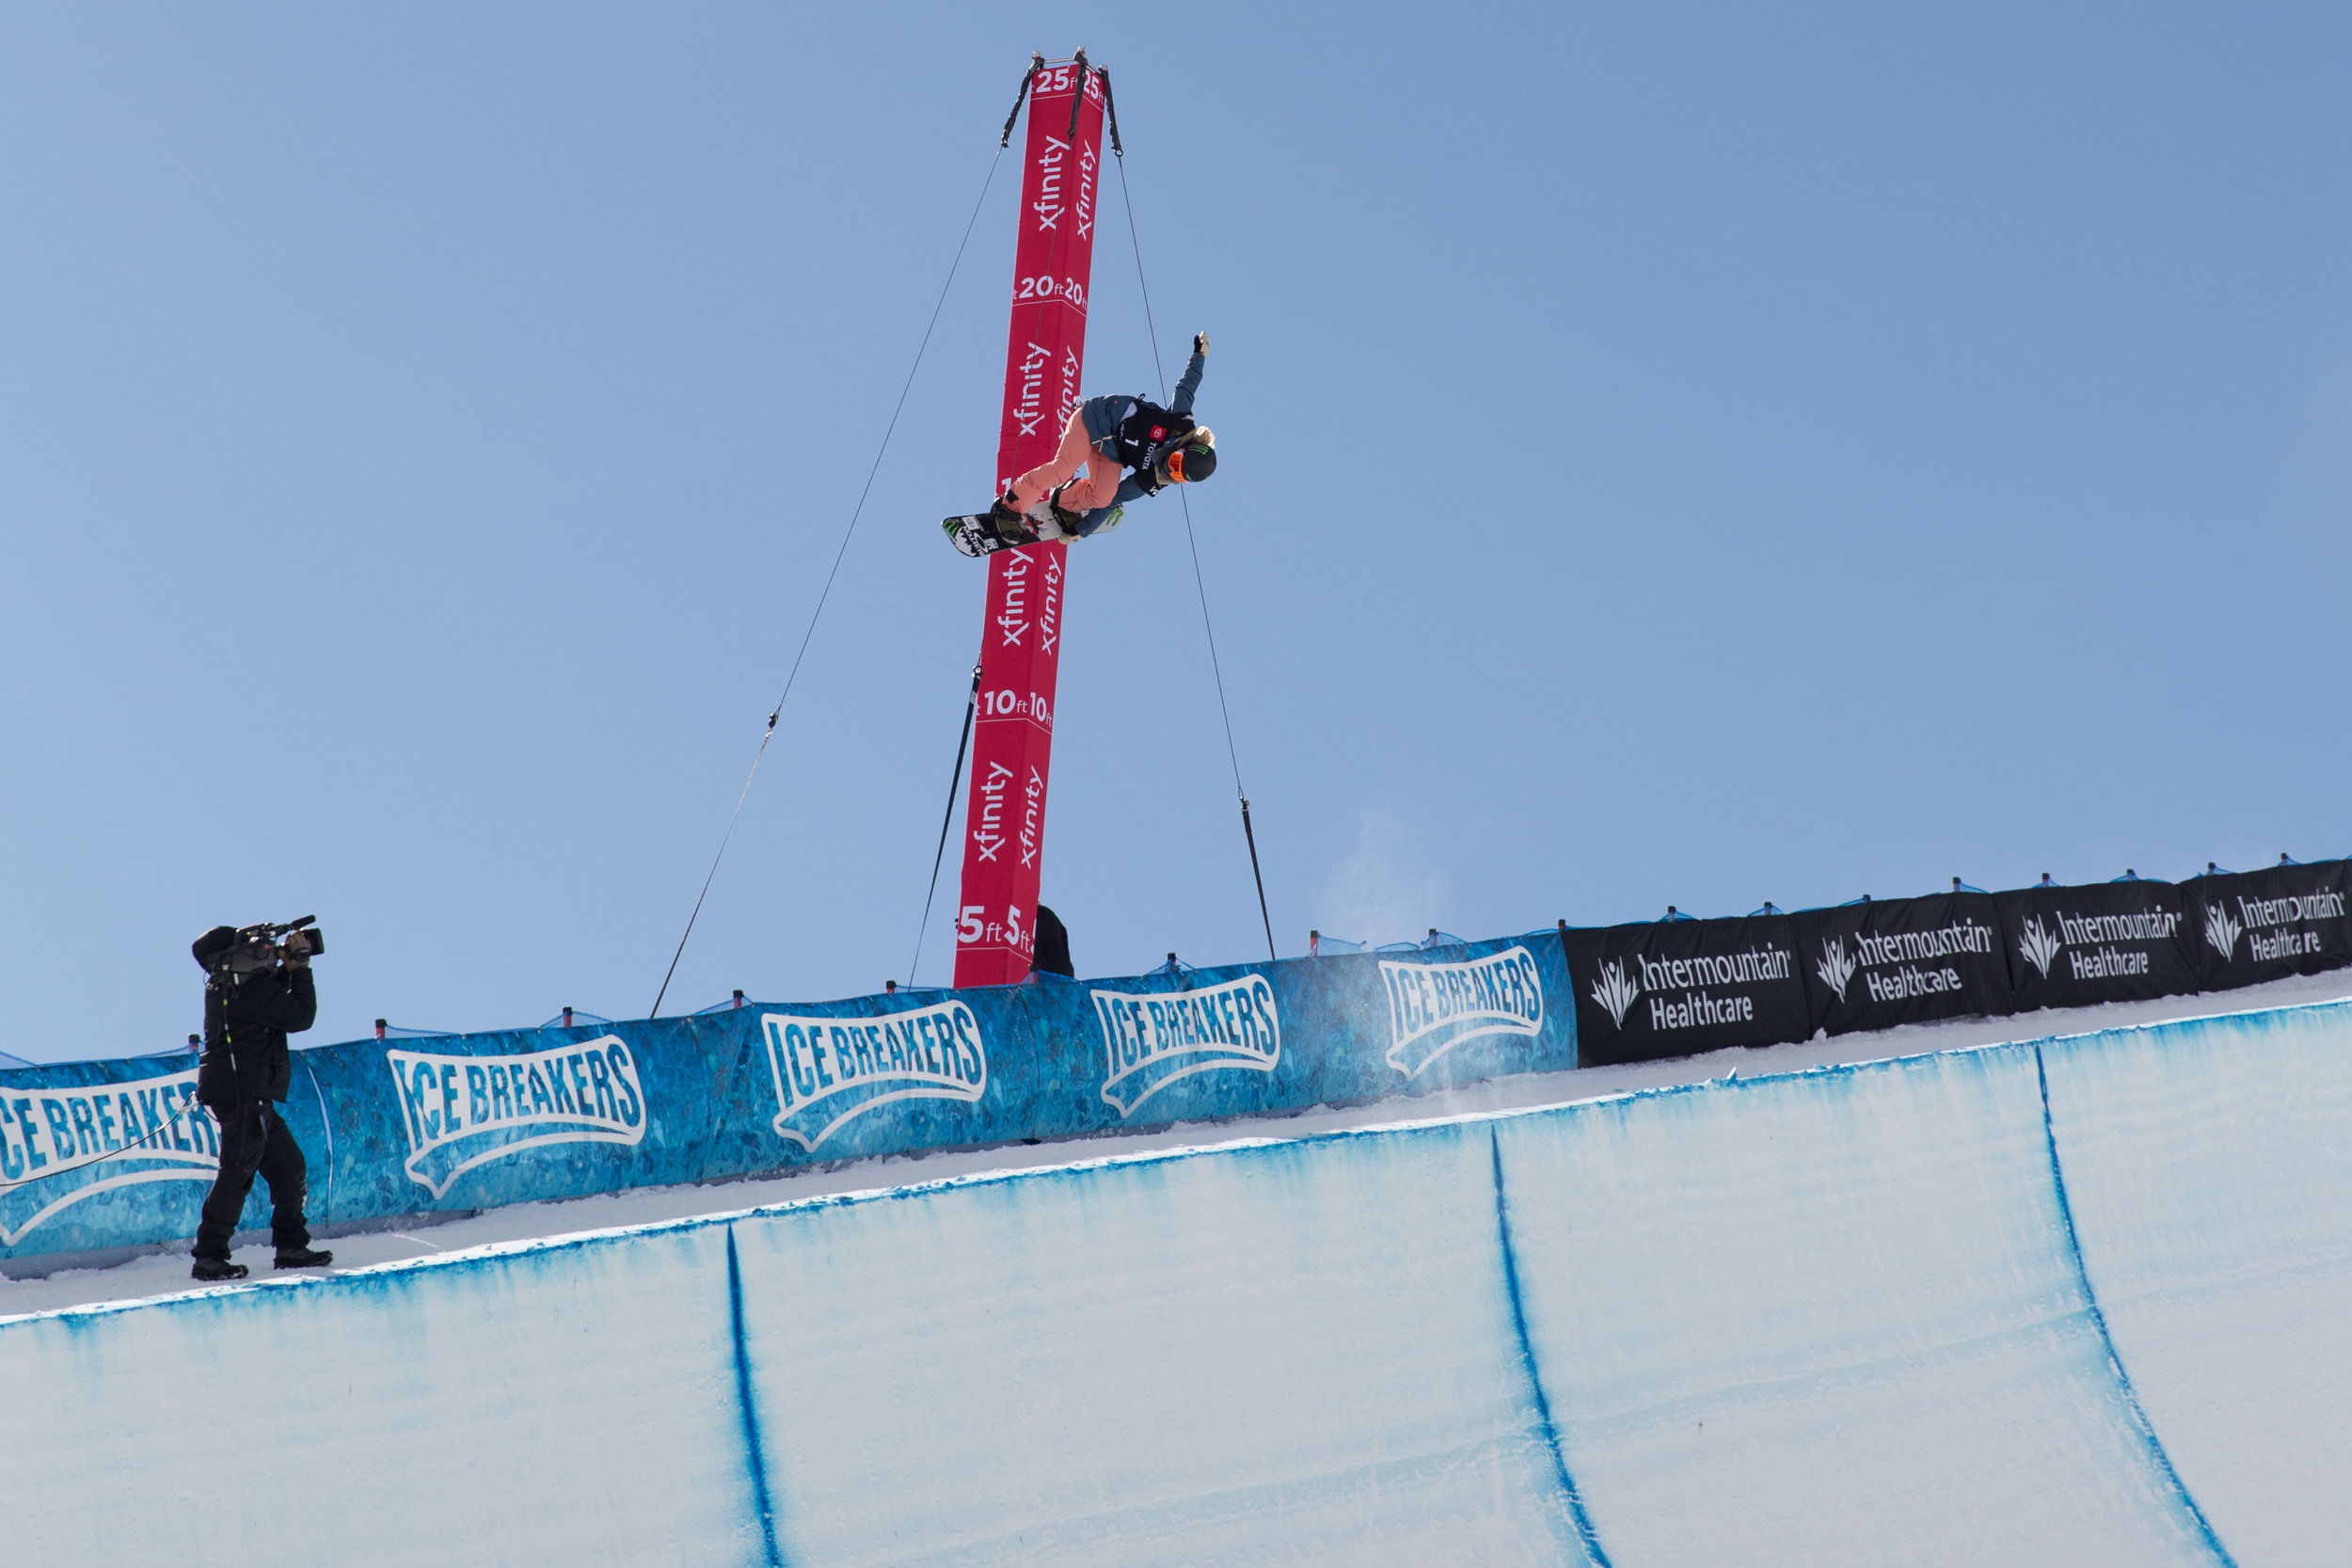 2019 News and Videos — FIS World Championships February 1-10, 2019